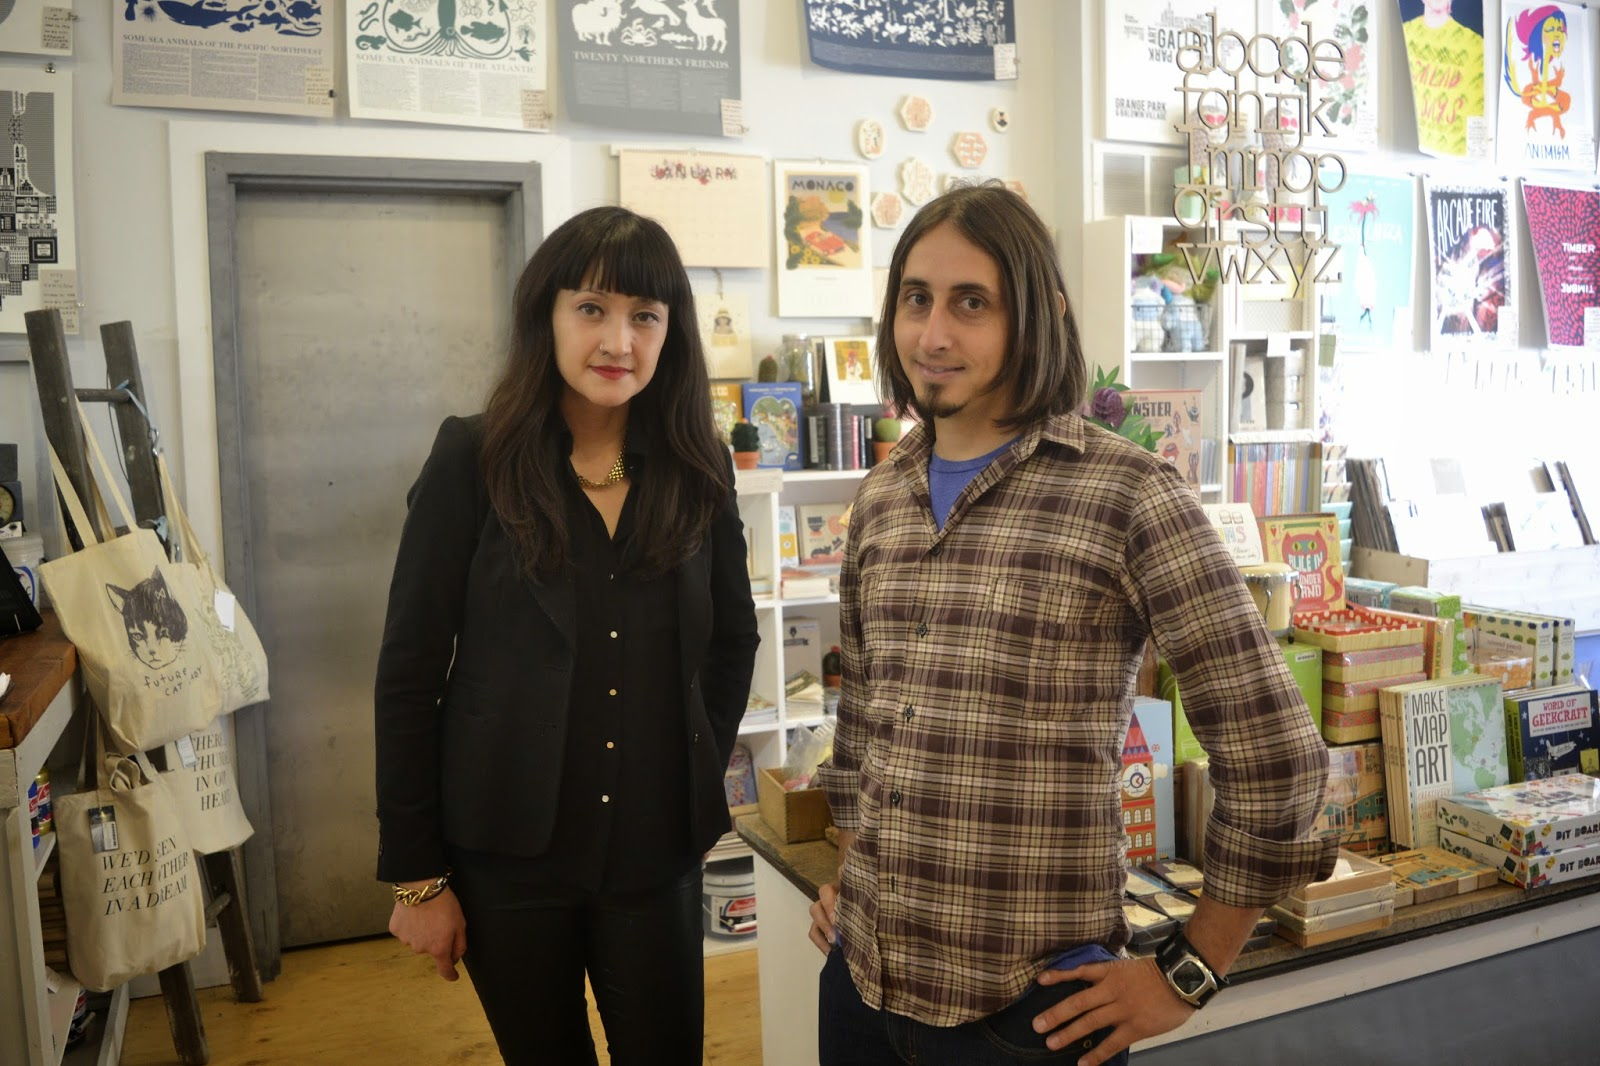 Bianca And Mike Of Kid Icarus At Their Store In Kensington Market Where CBC Filmed The Spot About Our Etsy Made Canada Show This Morning